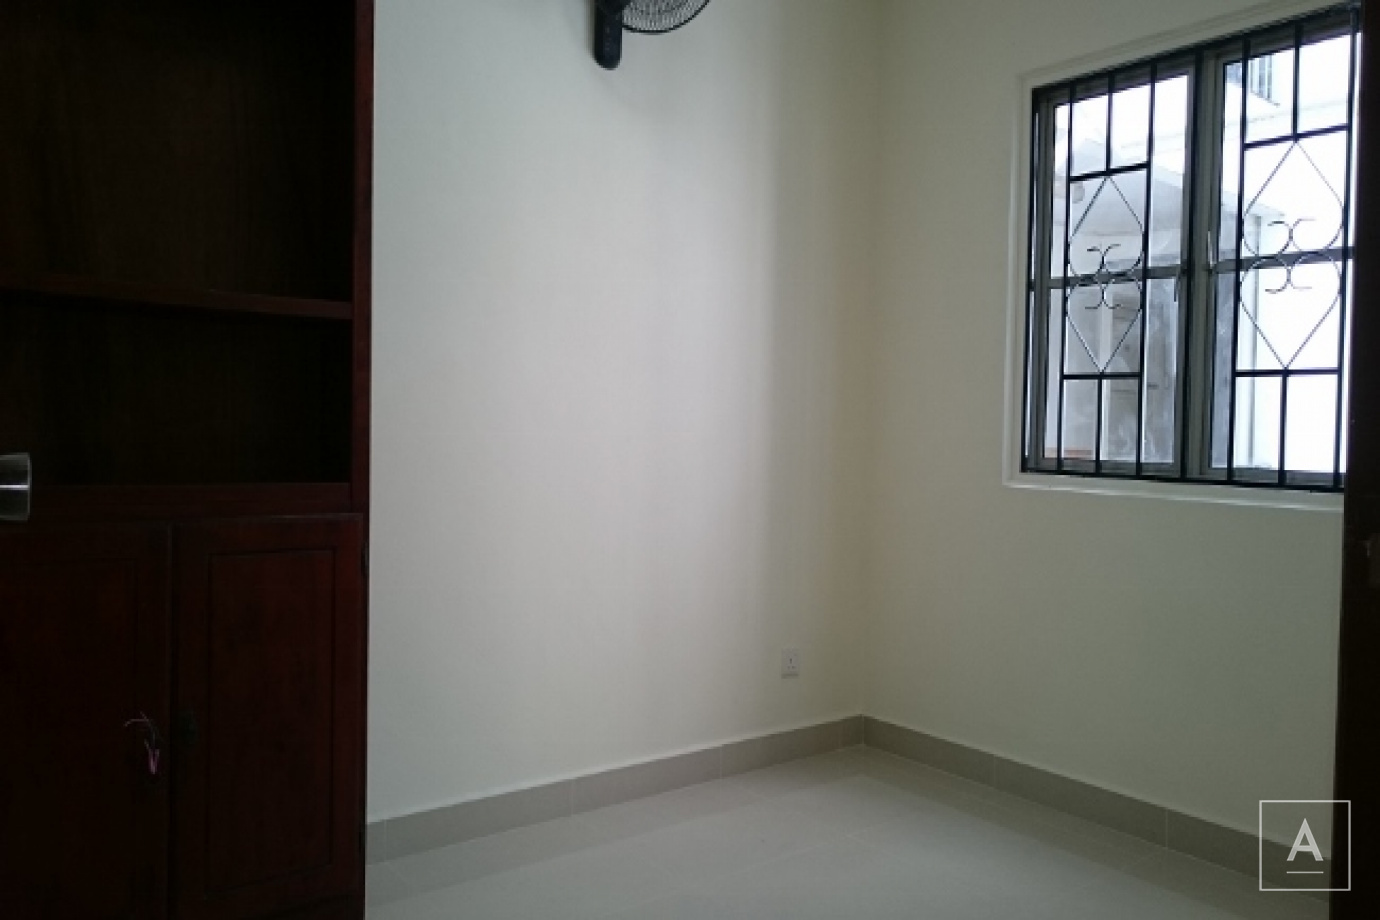 Pantai Hillpark 5, Bangsar,Kuala Lumpur, 3 Bedrooms Bedrooms, ,2 BathroomsBathrooms,Condominium / Serviced Residence,To Let,Pantai Hillpark 5,Jalan Pantai Murni 1,1591